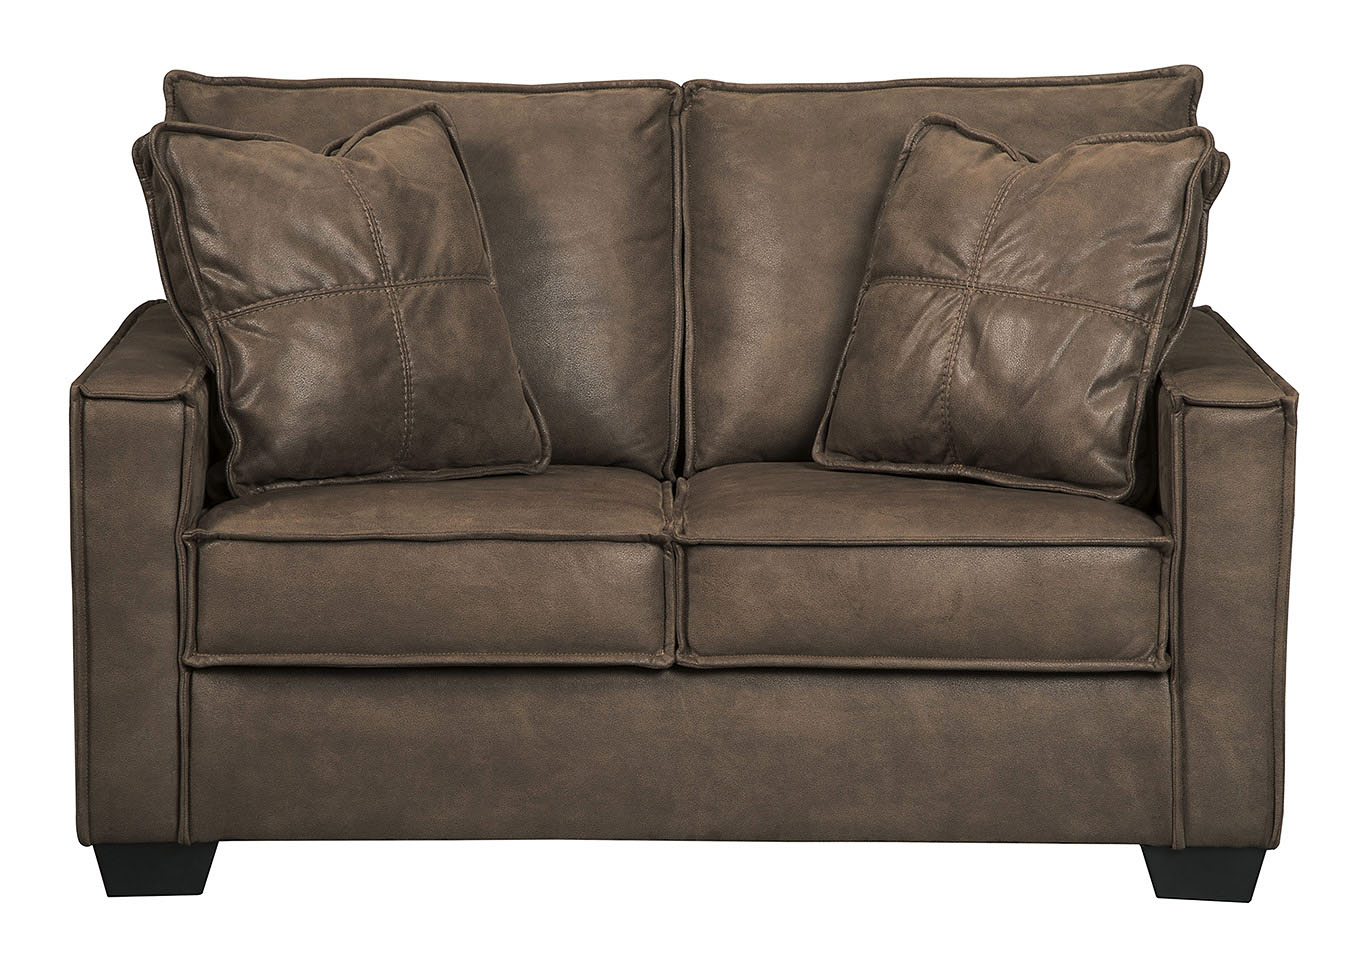 Terrington Harness Loveseat,Signature Design By Ashley